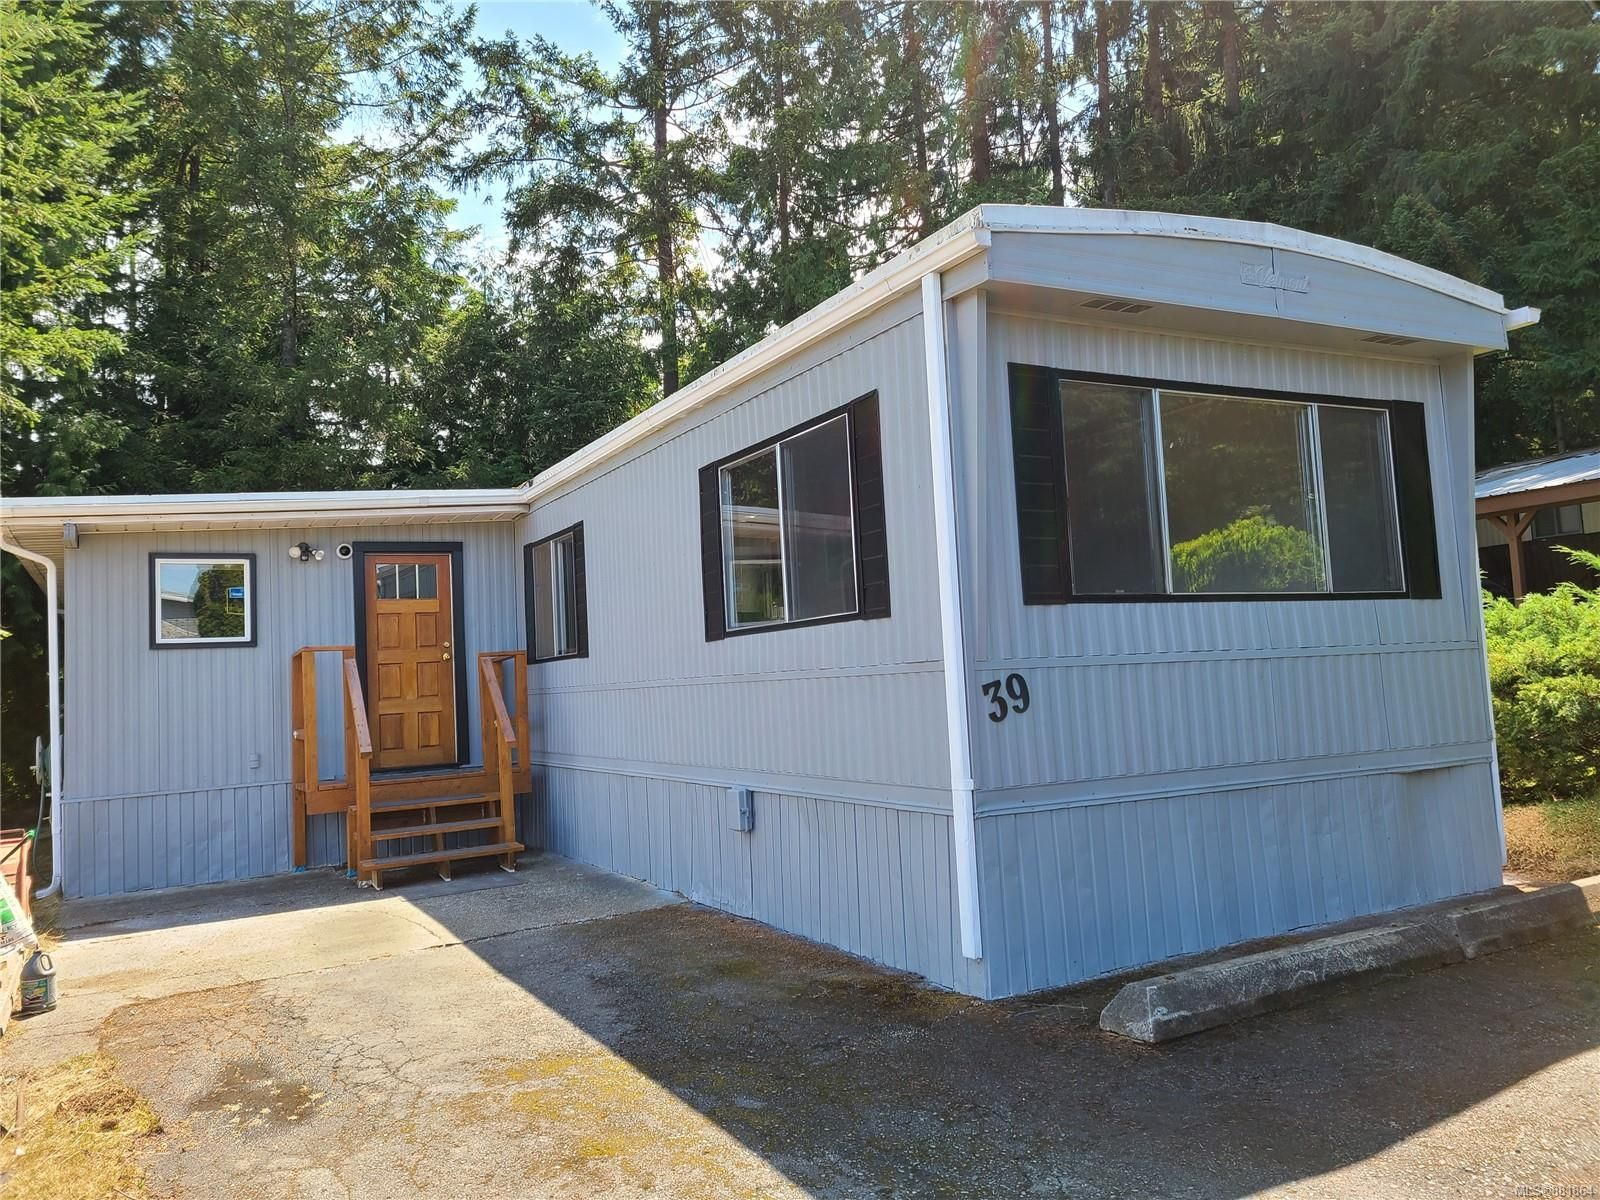 Main Photo: 39 1260 Fisher Rd in : ML Cobble Hill Manufactured Home for sale (Malahat & Area)  : MLS®# 881864